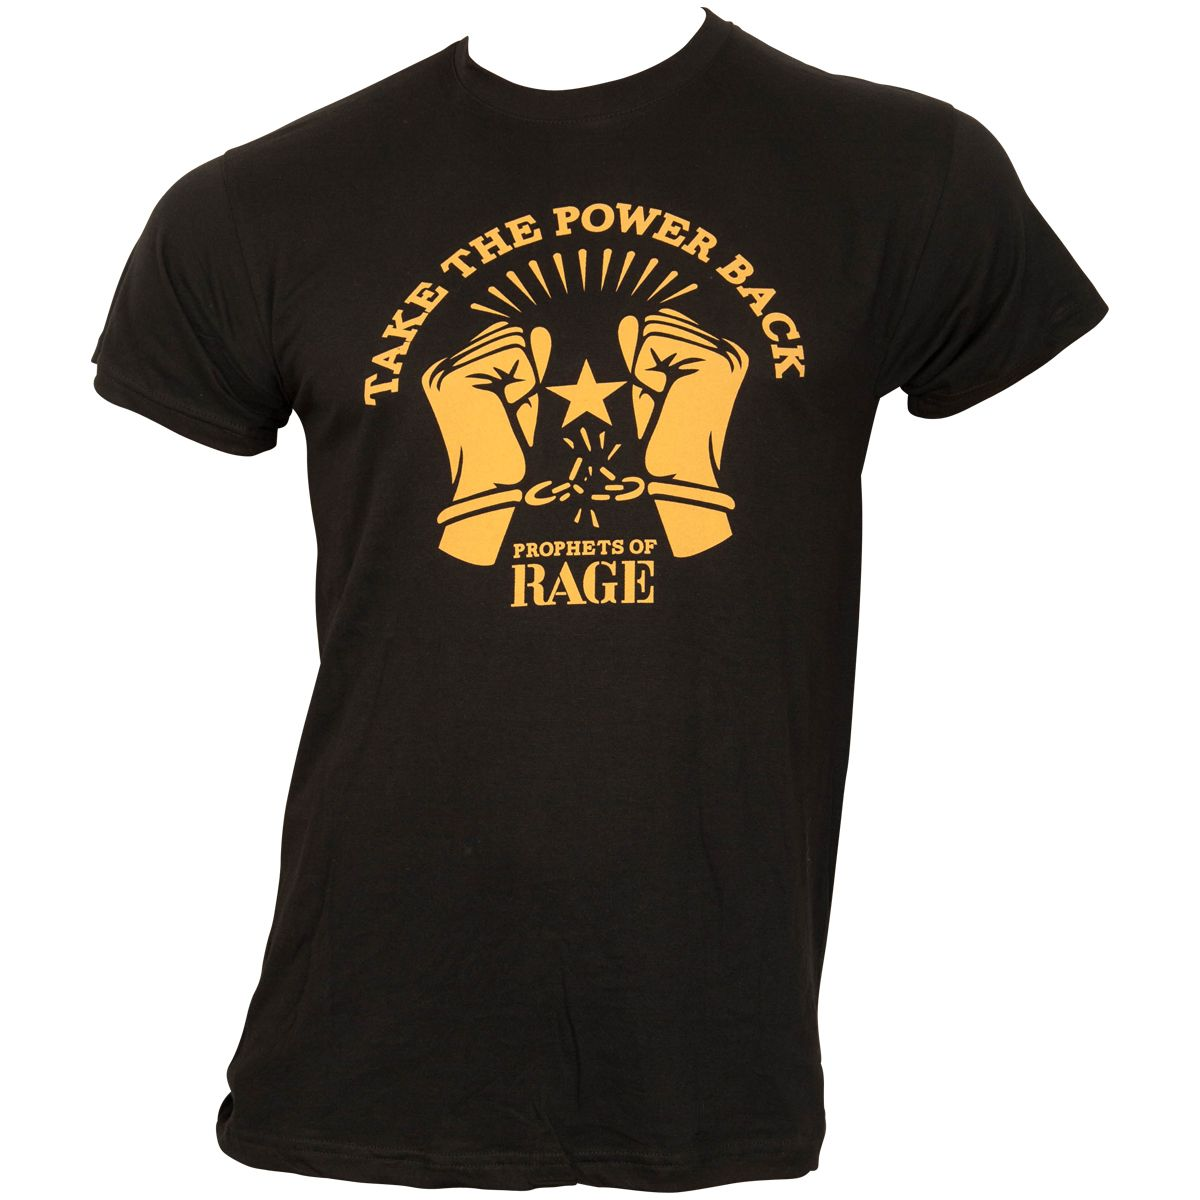 Prophets of Rage - T-Shirt Take The Power Back - schwarz